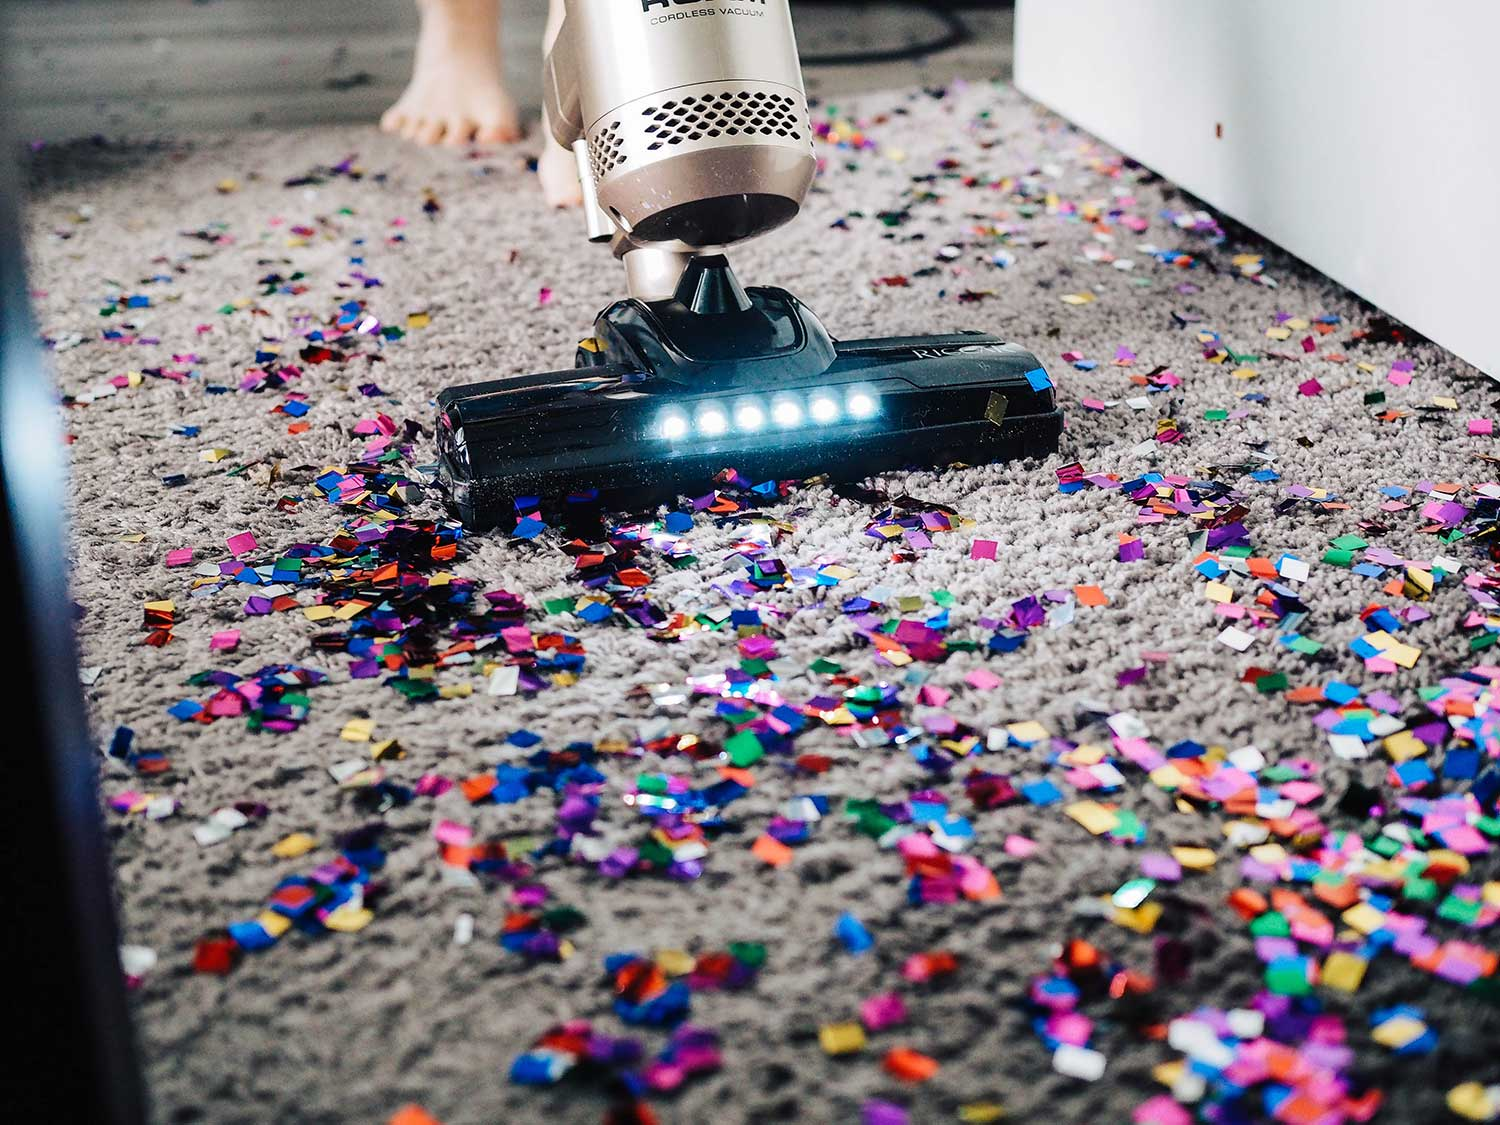 Vacuuming confetti off of carpet with stick vacuum